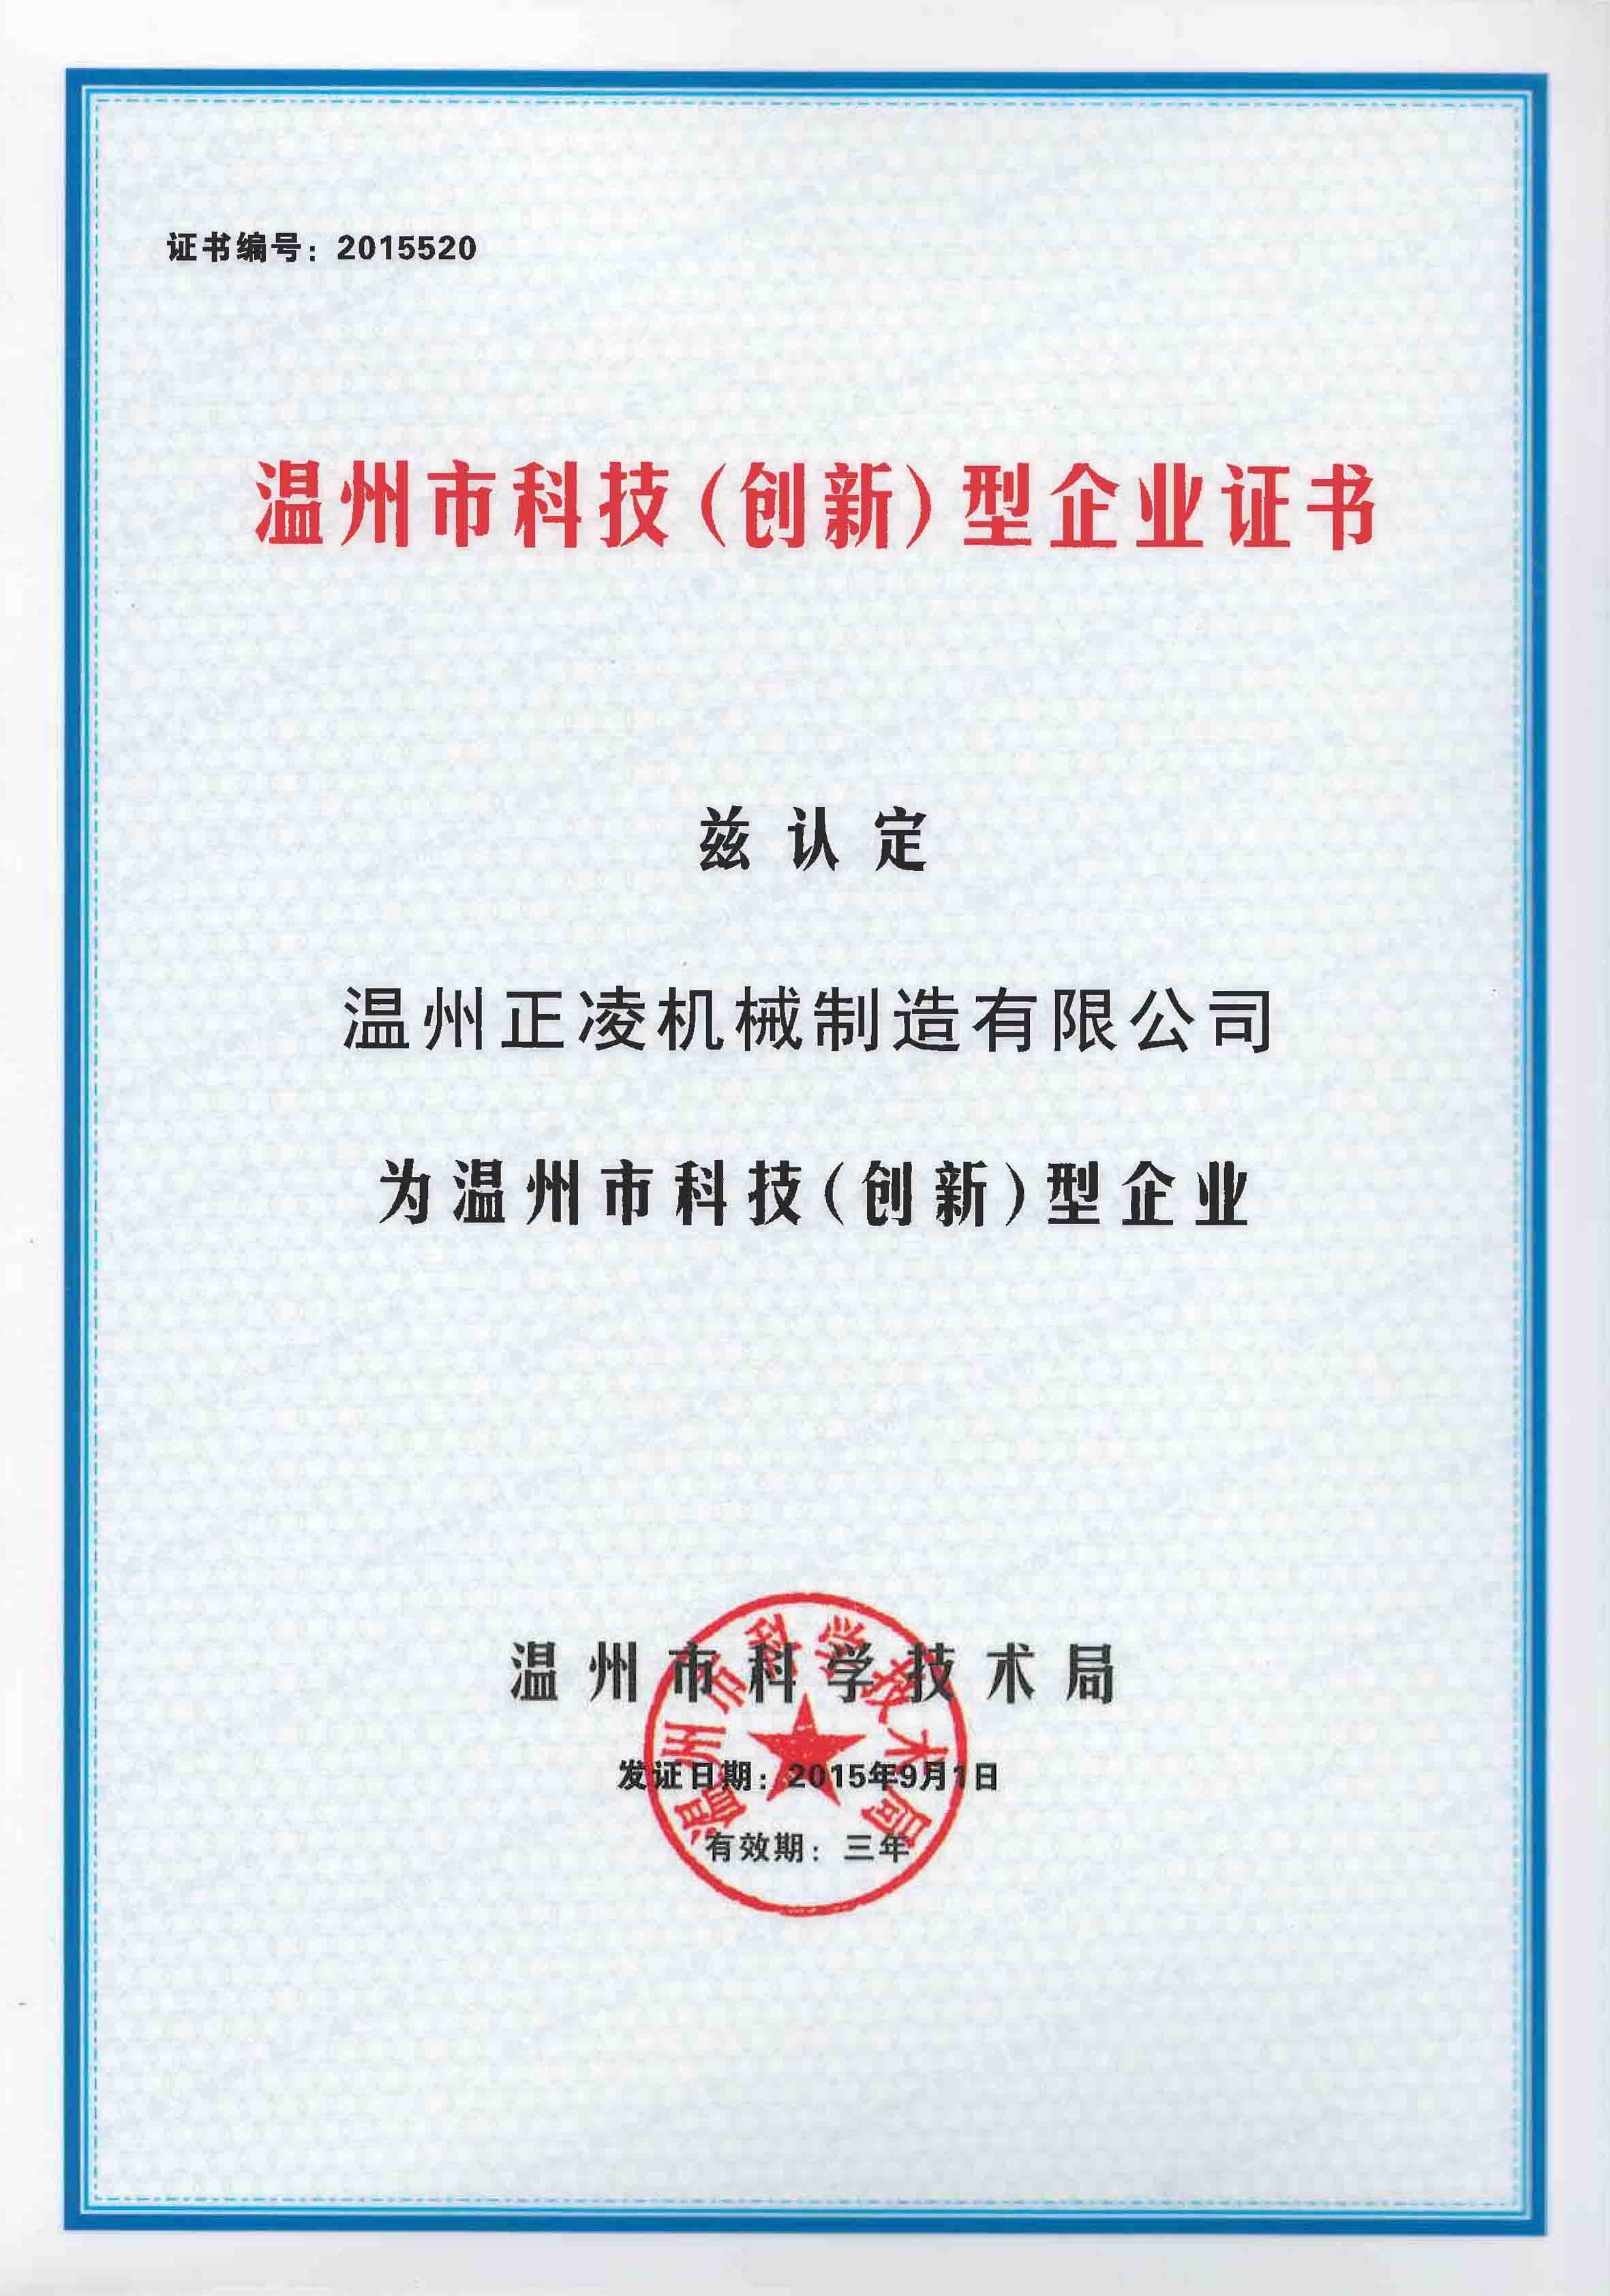 Science and Technology (Innovative) Enterprise Certificate